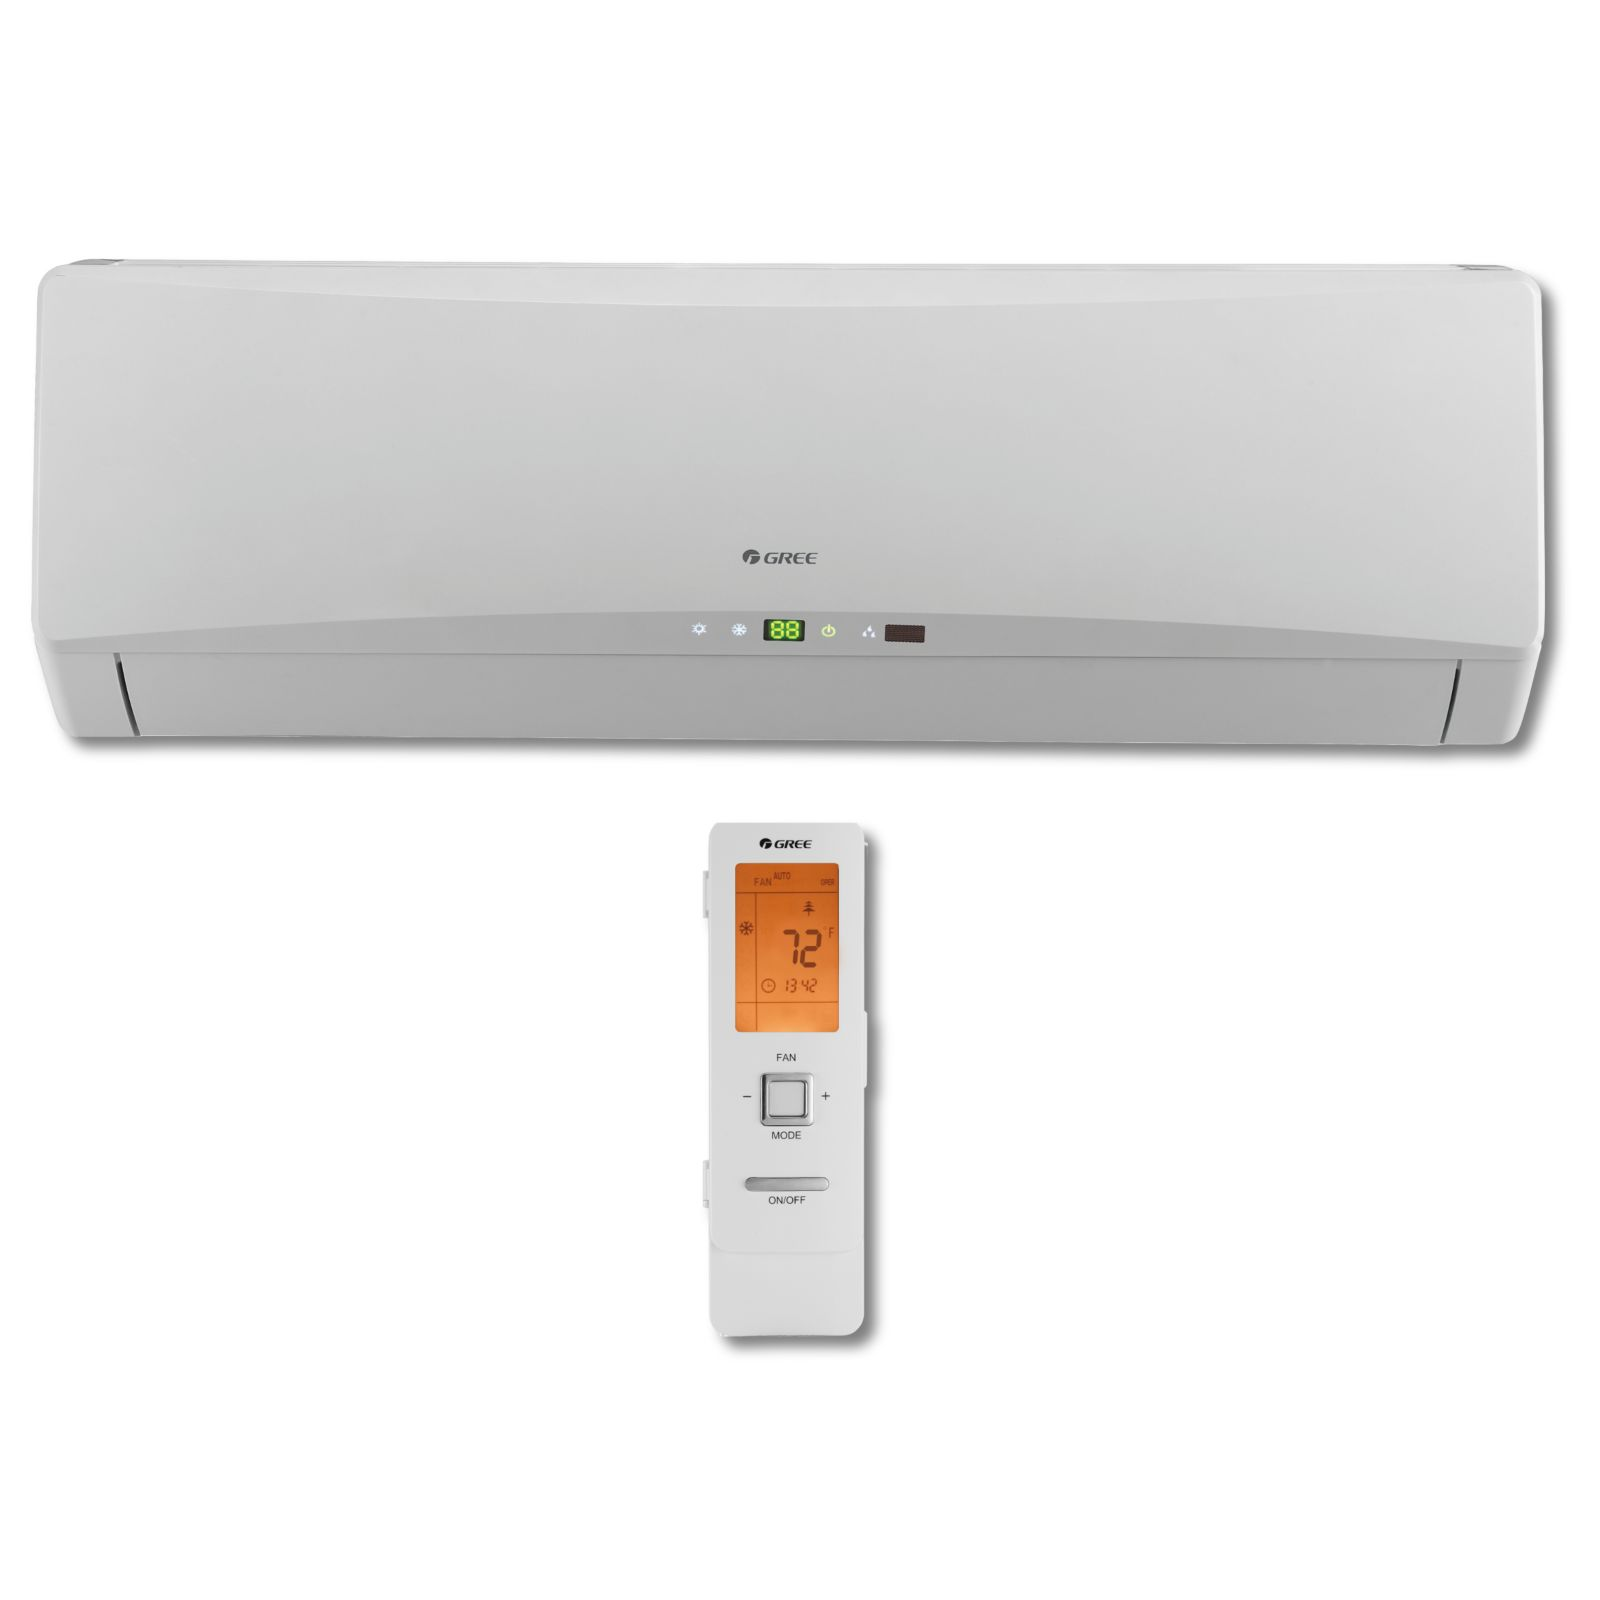 GREE TERRA24HP230V1BH - 2 Ton 21 SEER 24,000 BTU TERRA Ductless Mini-Split Indoor Unit 208-230/1/60 Ultra High Efficiency